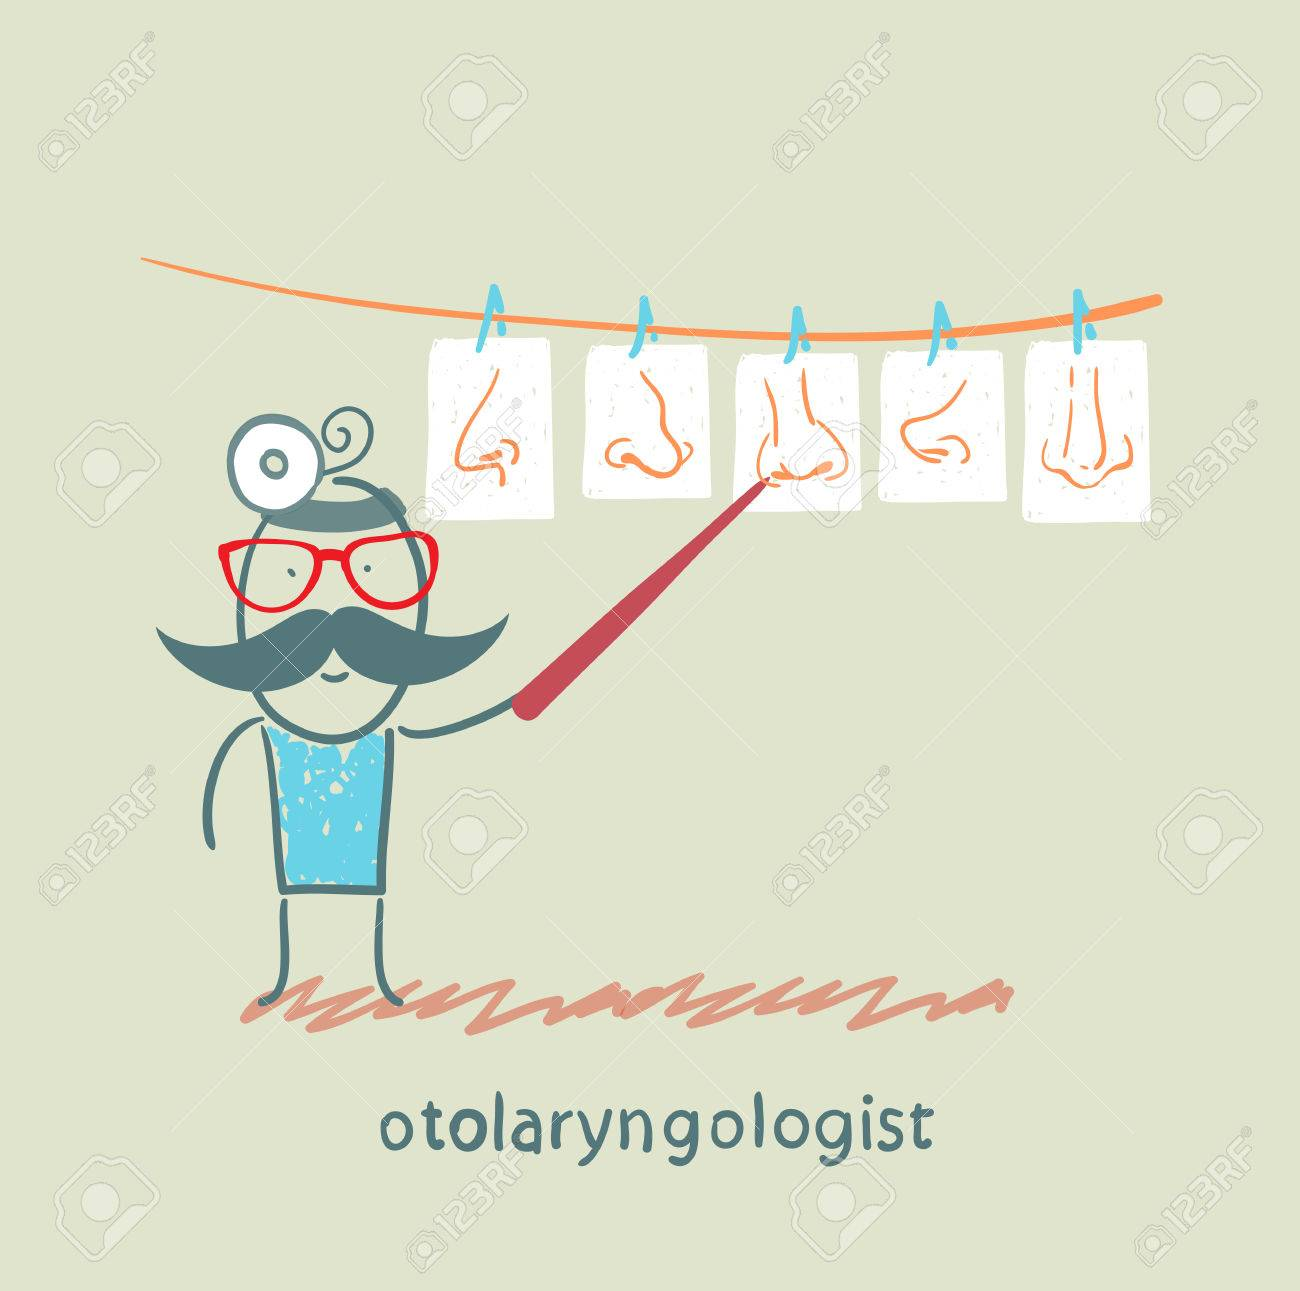 otolaryngologist show pictures with their noses Stock Vector - 22373170